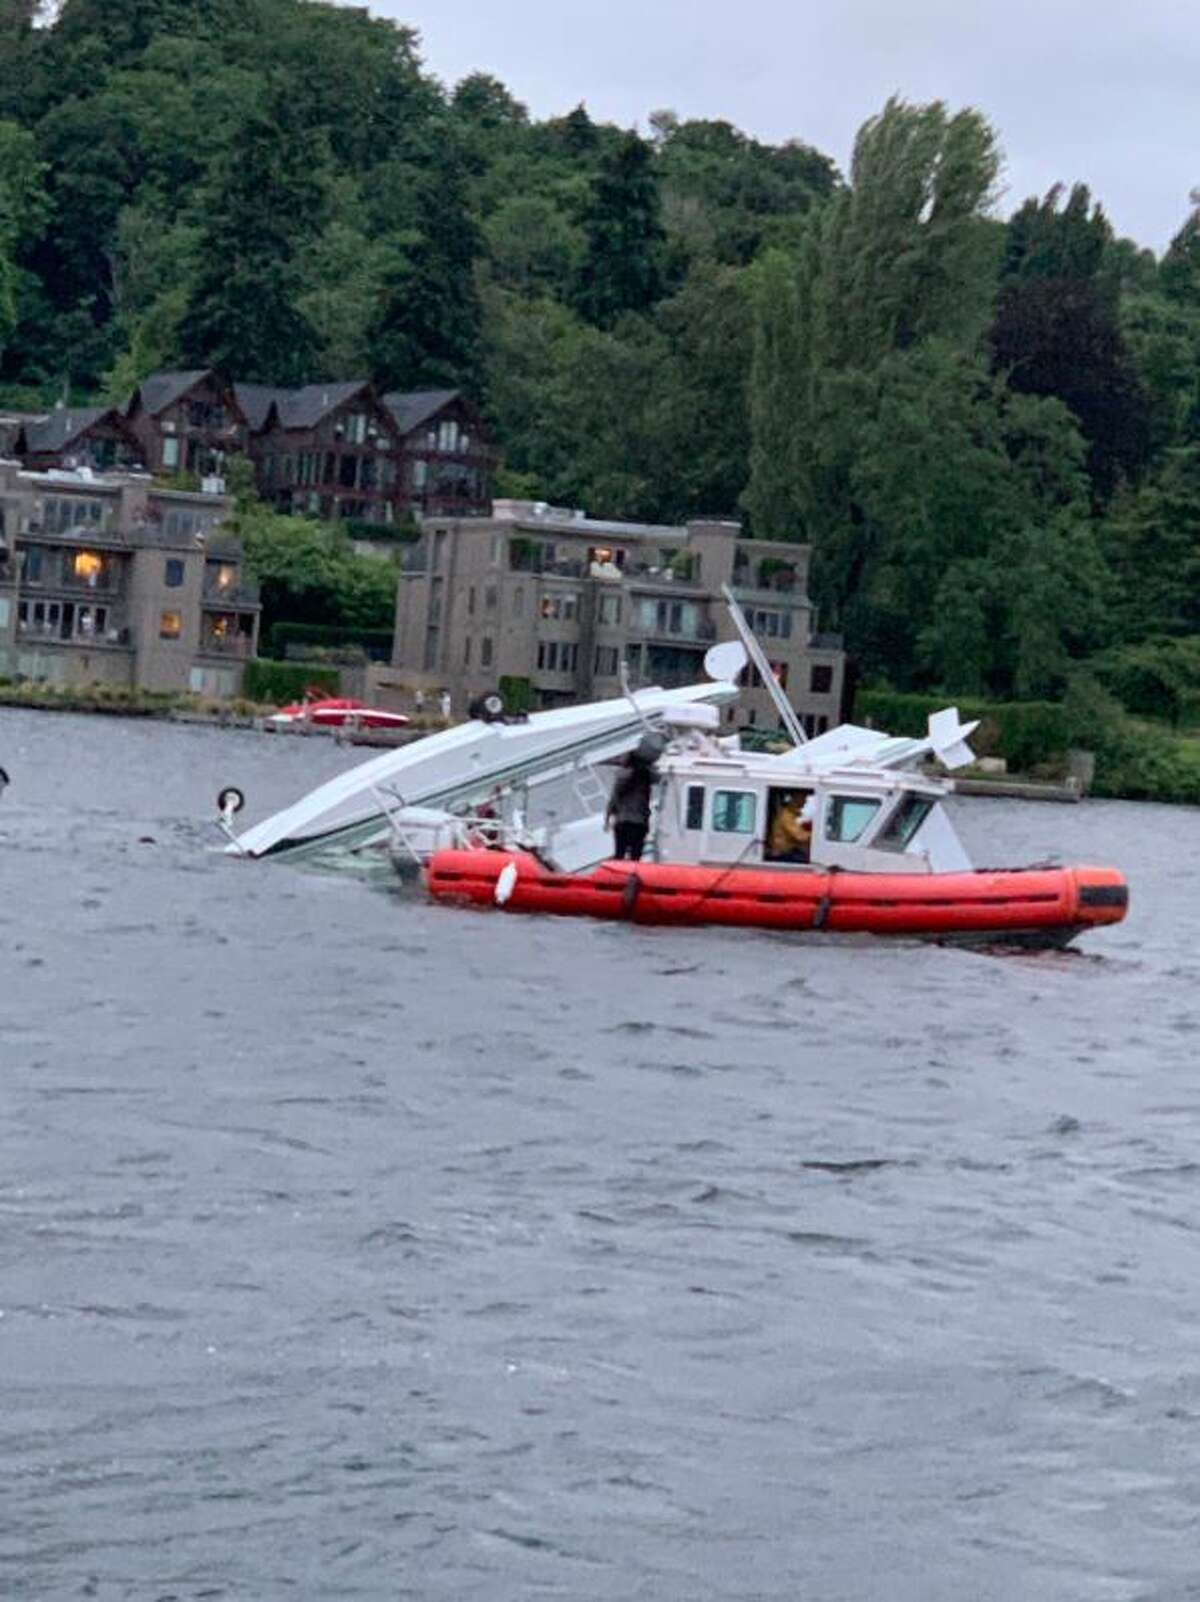 Two people rescued by nearby kayakers after seaplane crashes into Lake Washington